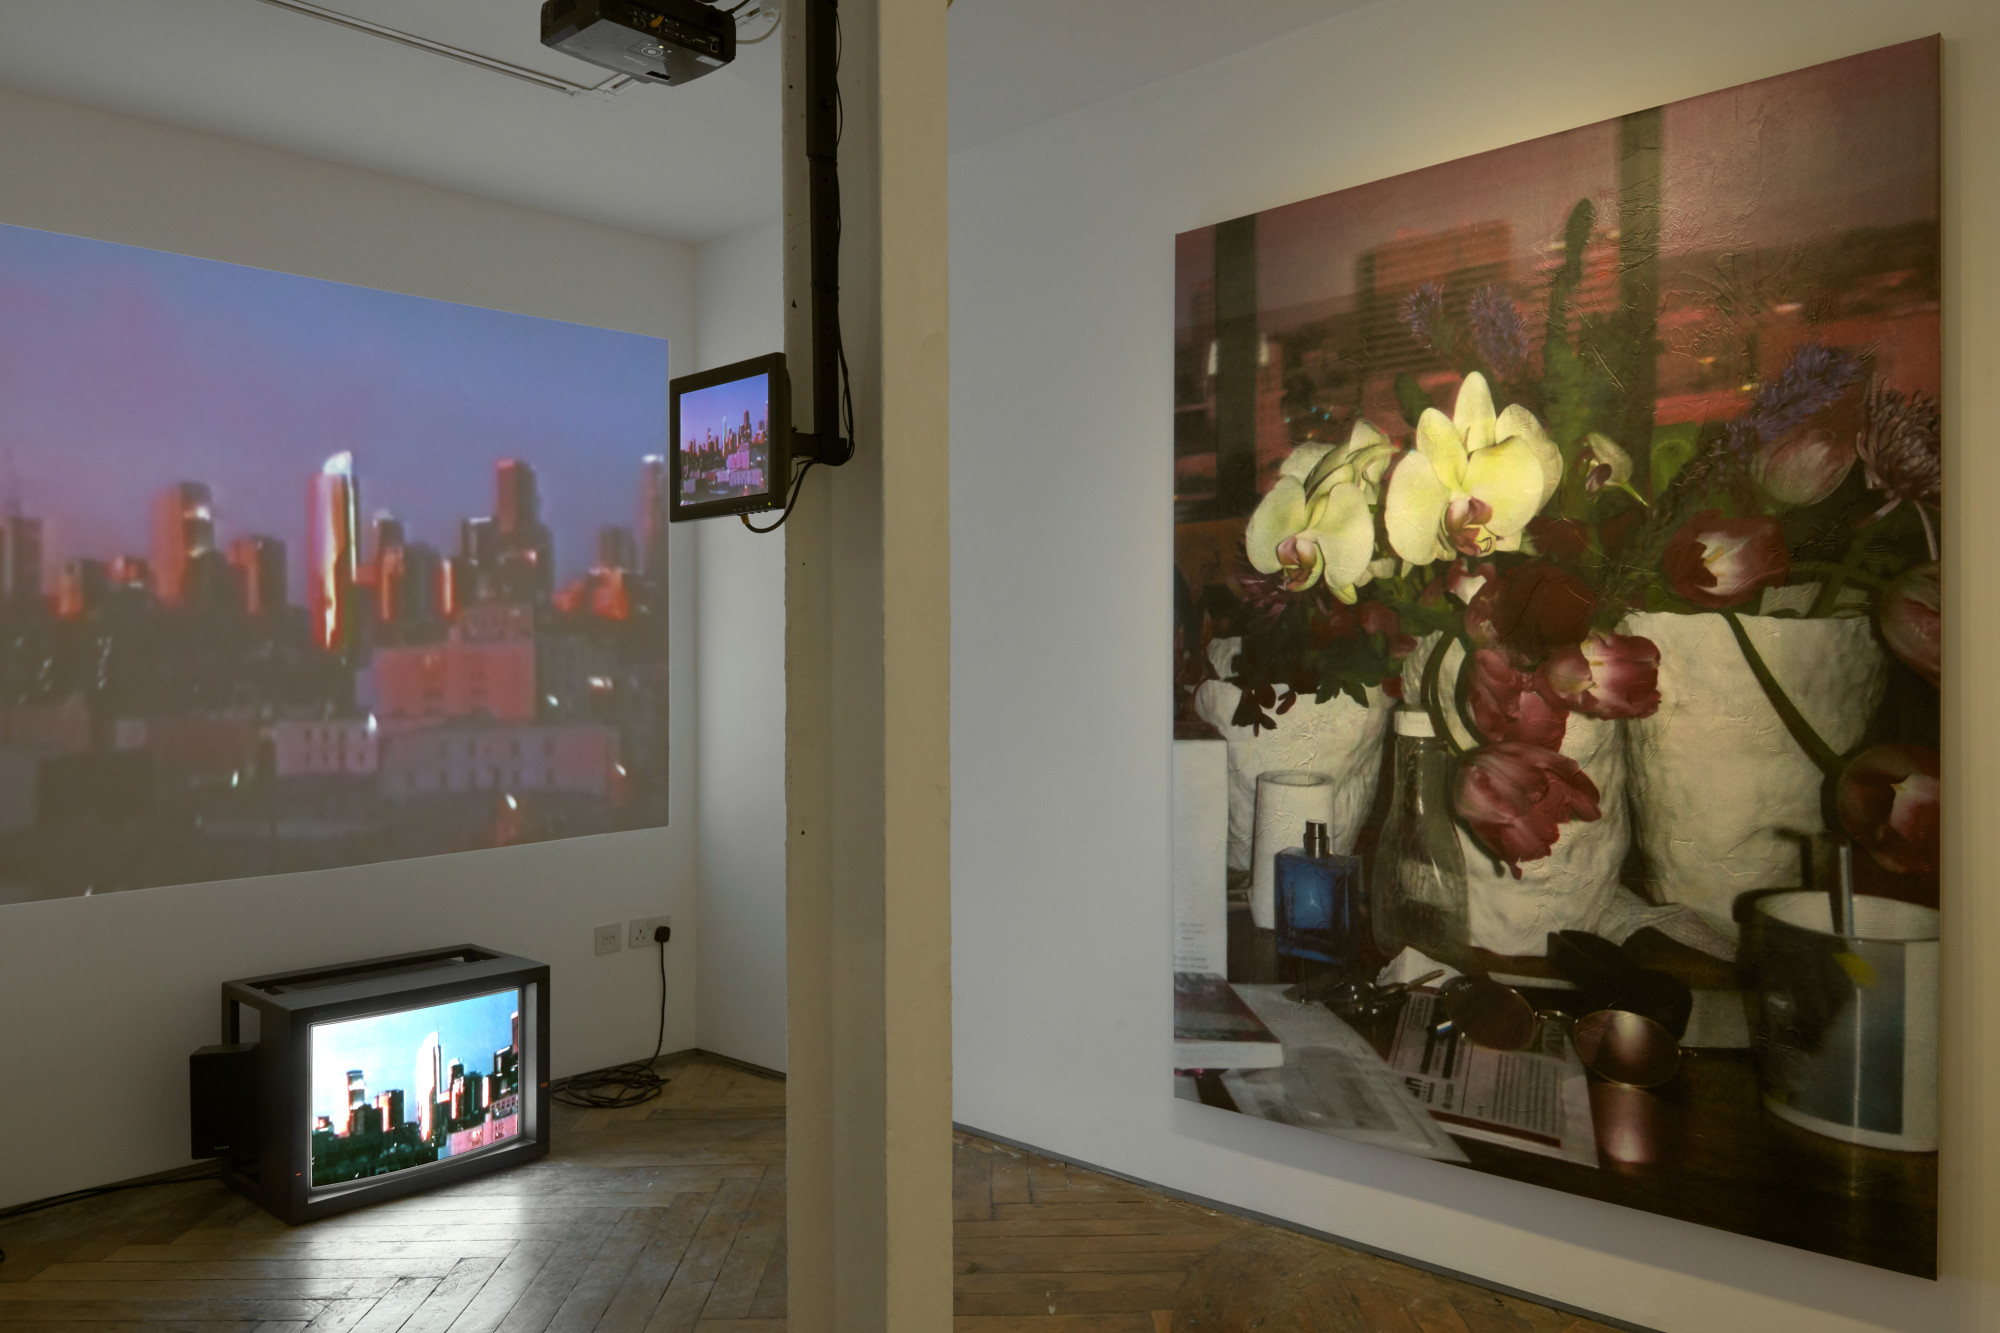 <p>Installation view, Cha&#770;teau Shatto, Parker Ito, The Shop, 62 Kingly Street, 2019</p><p>Photo by Robert Glowacki</p>